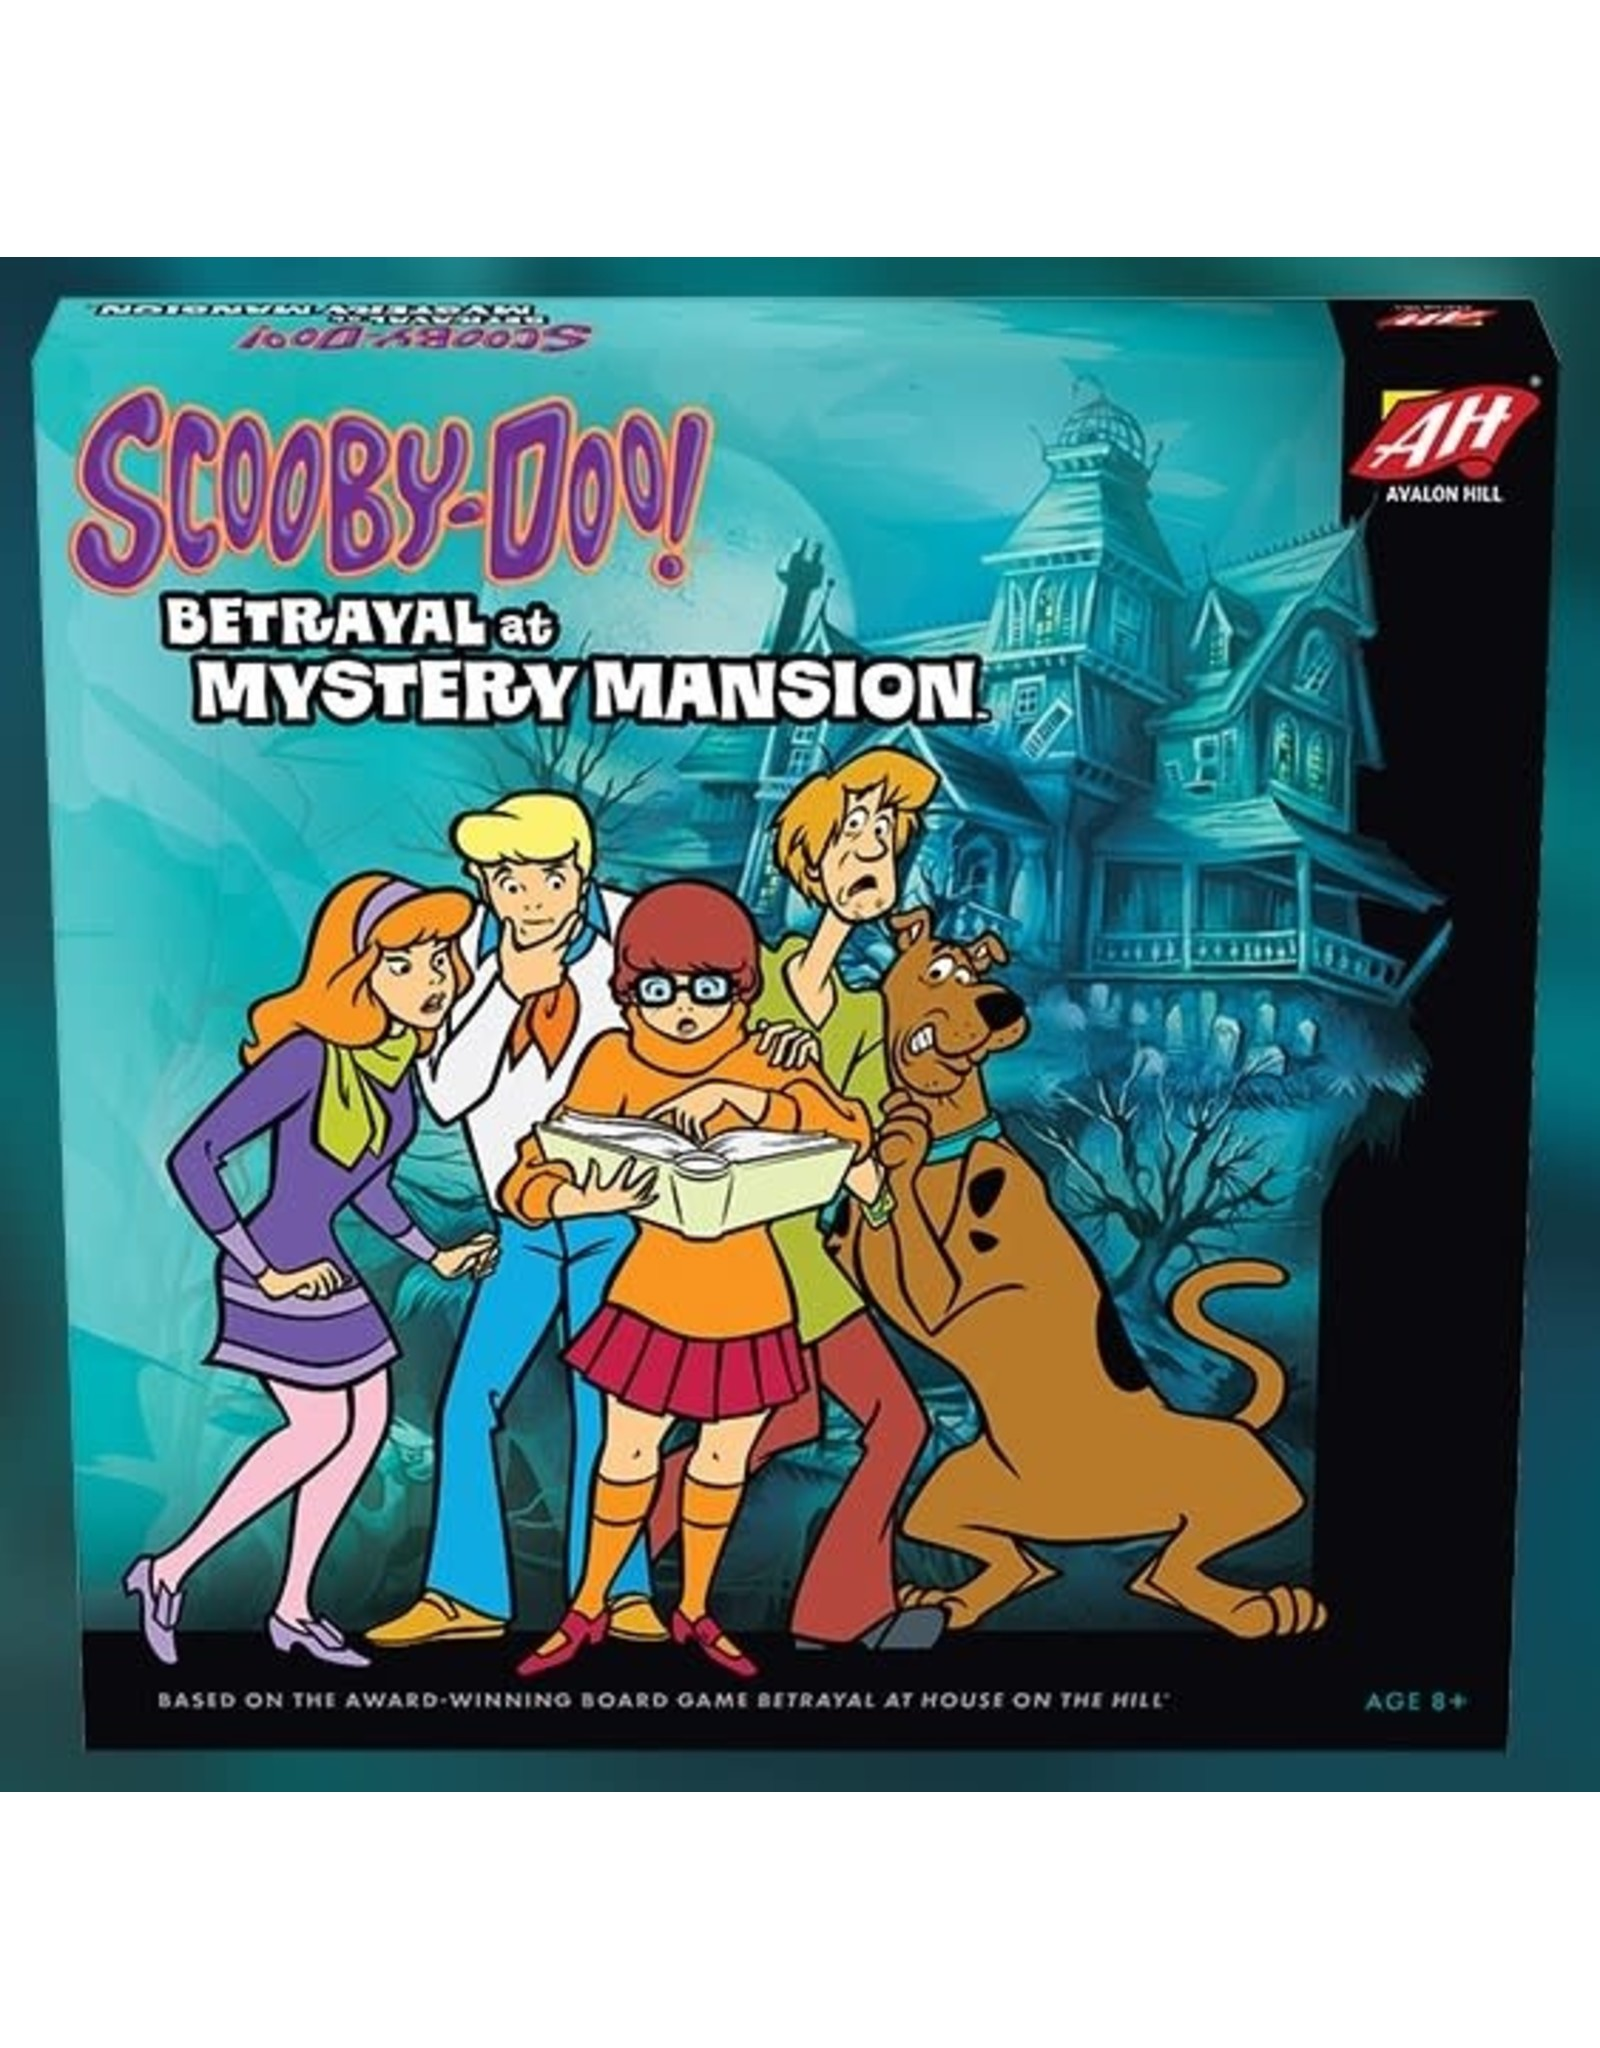 Avalon Hill Betrayal at Mystery Mansion